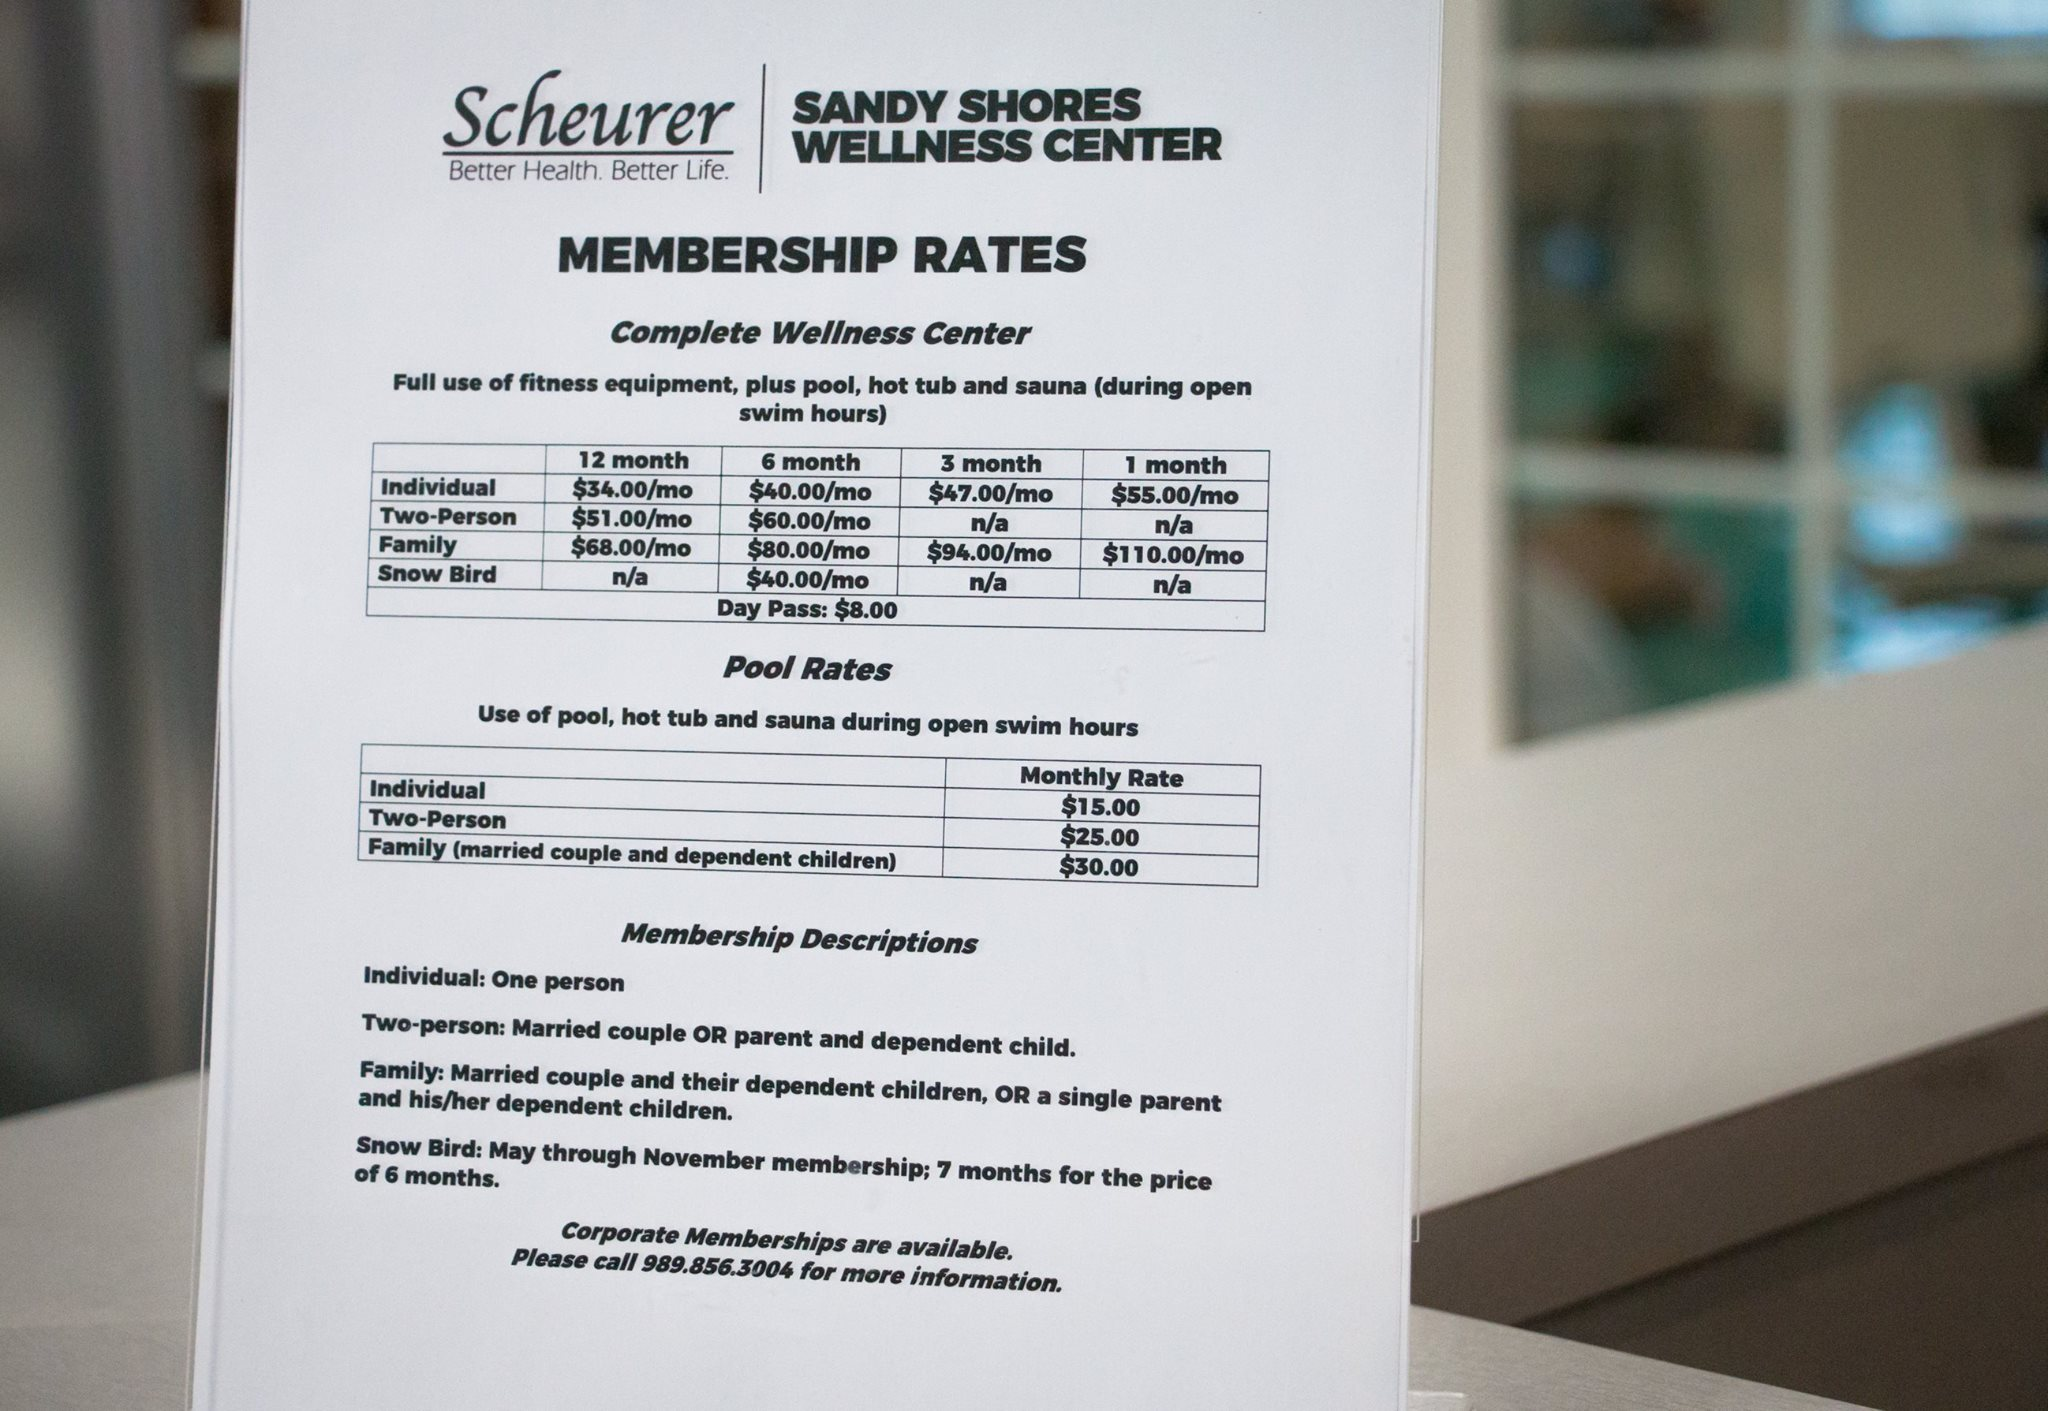 Sandy Shores Wellness Center - Membership Rates.jpg